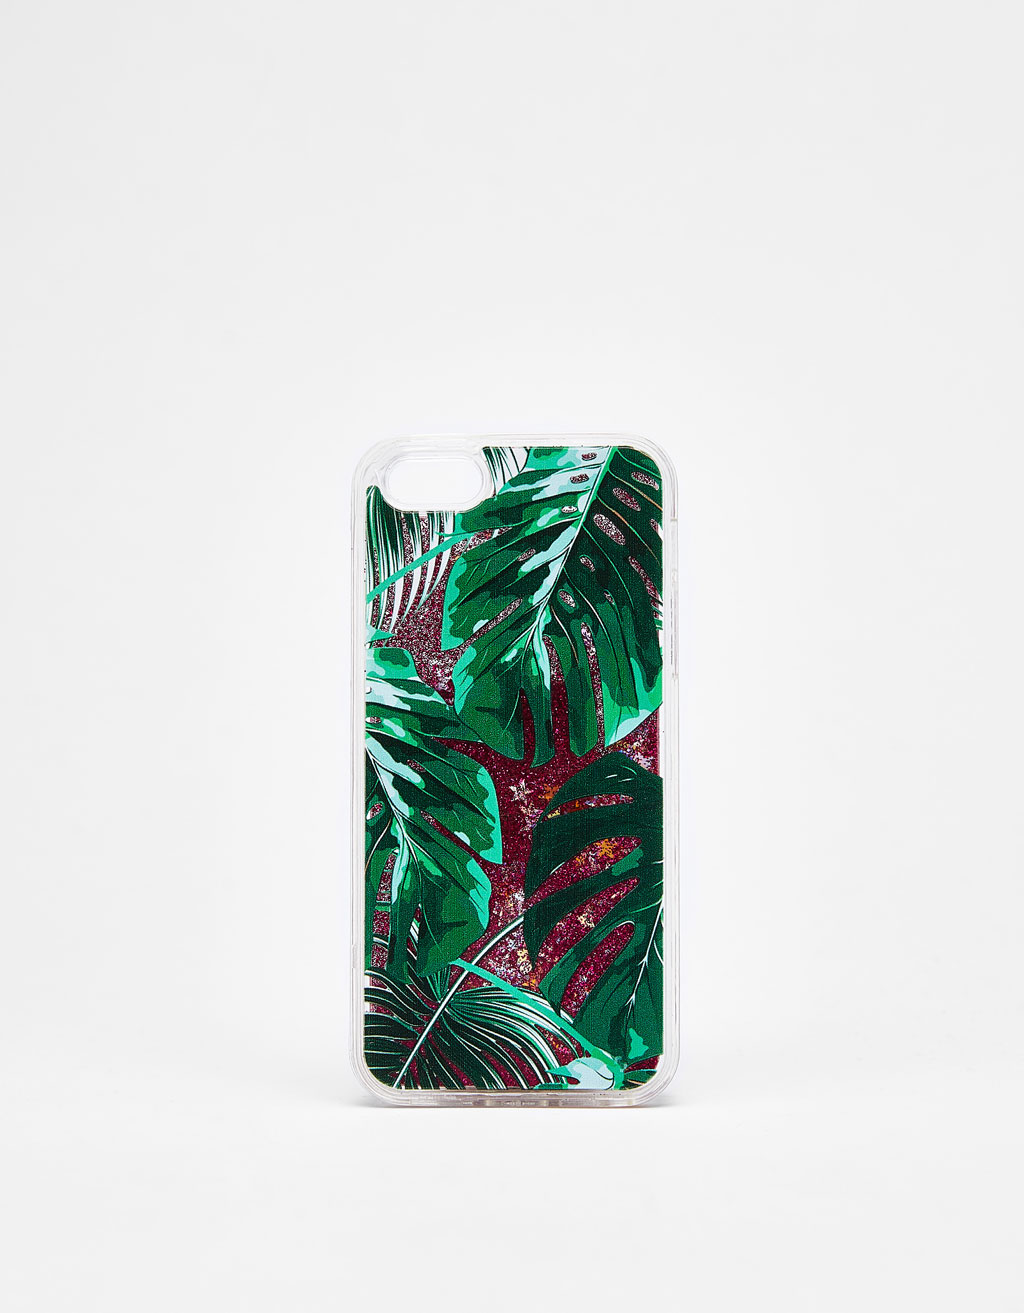 Tropical iPhone 5/5s case